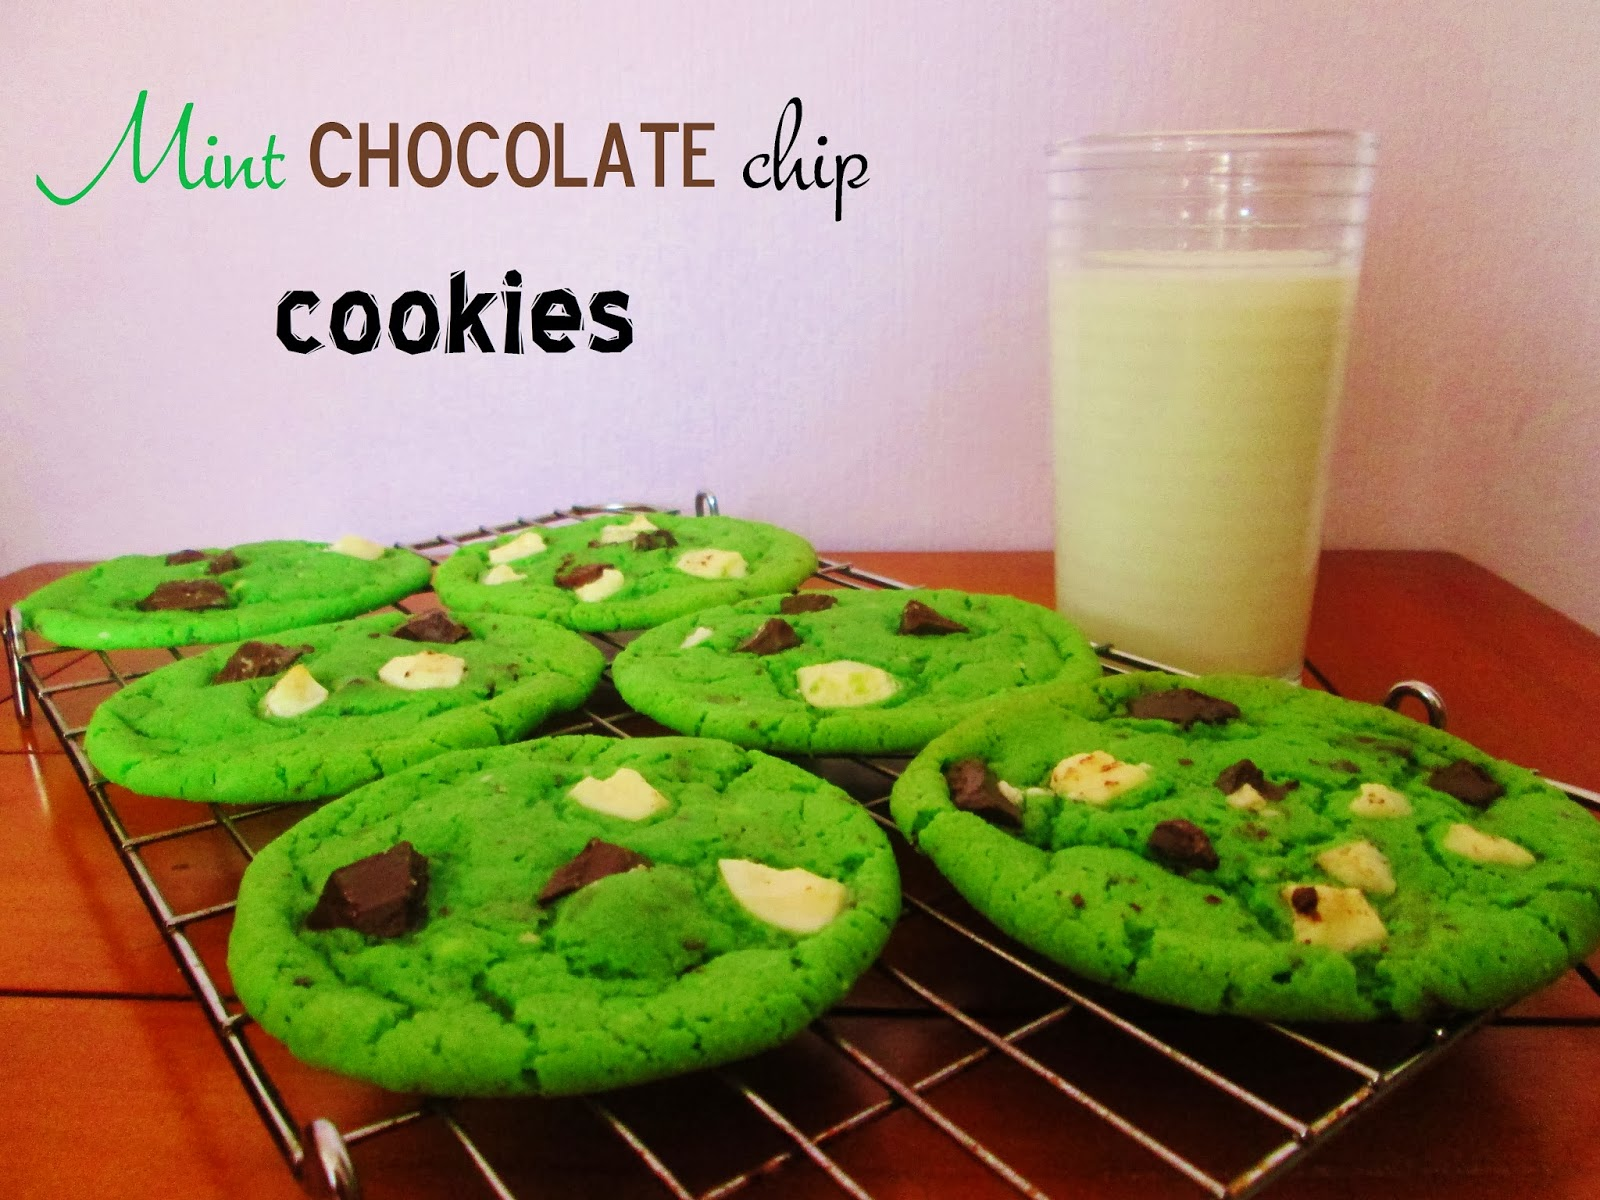 http://themessykitchenuk.blogspot.co.uk/2013/10/mint-chocolate-chip-cookies.html